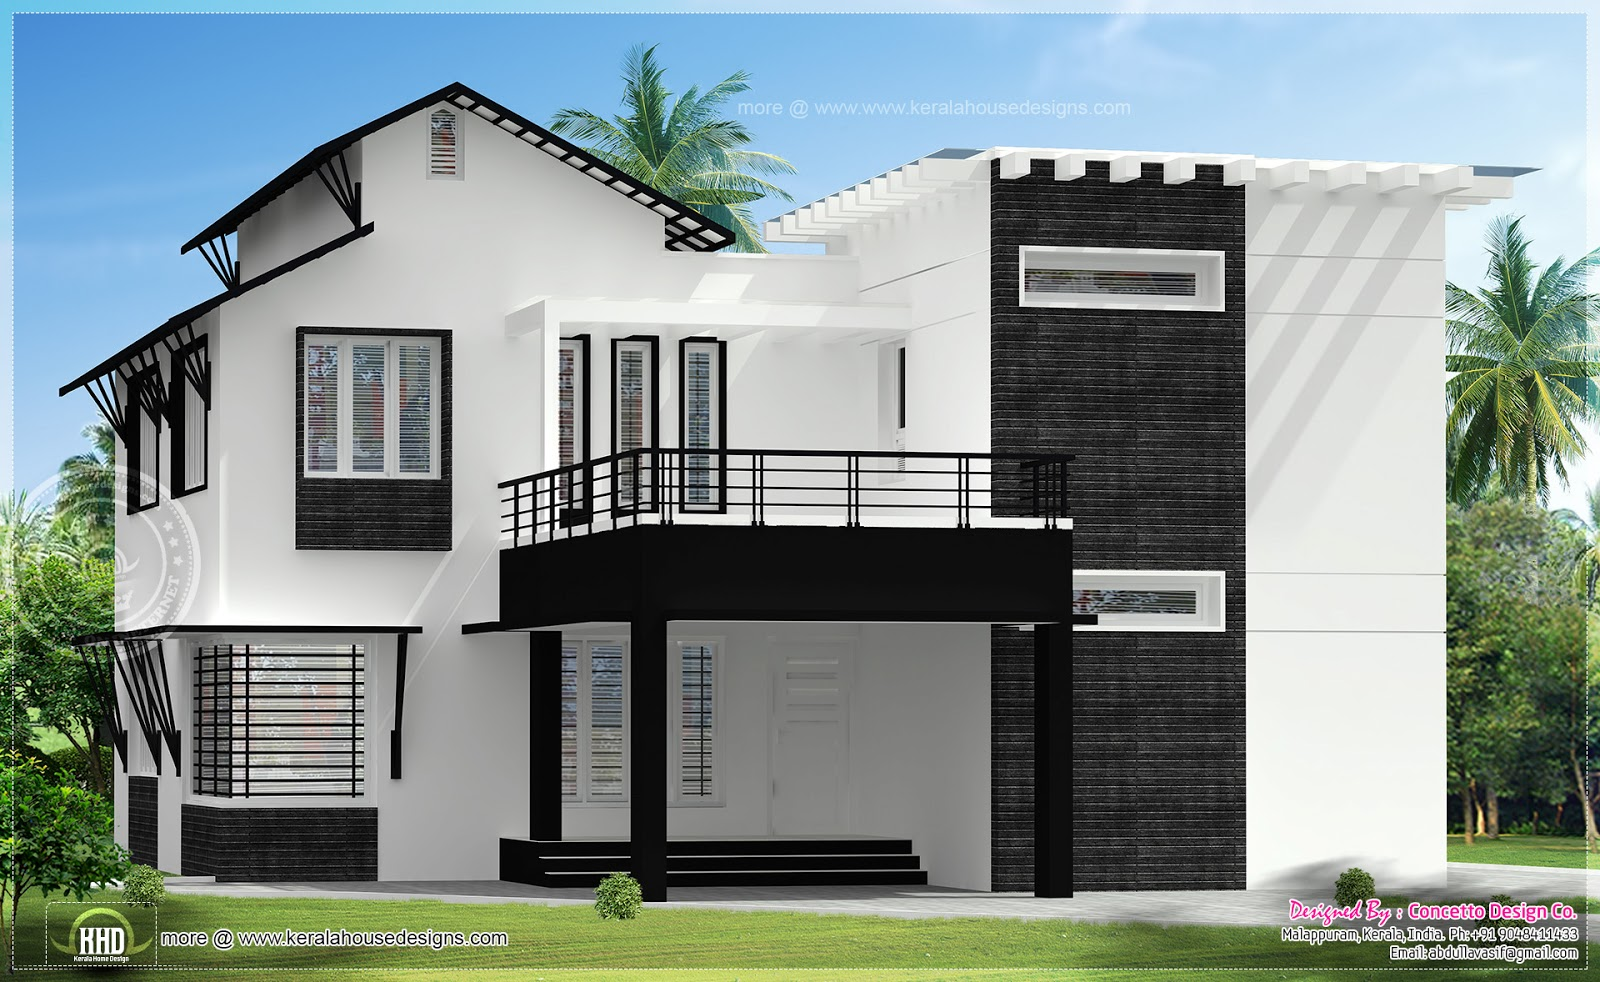 Elevation Floor Plan House : Different house exteriors by concetto design kerala